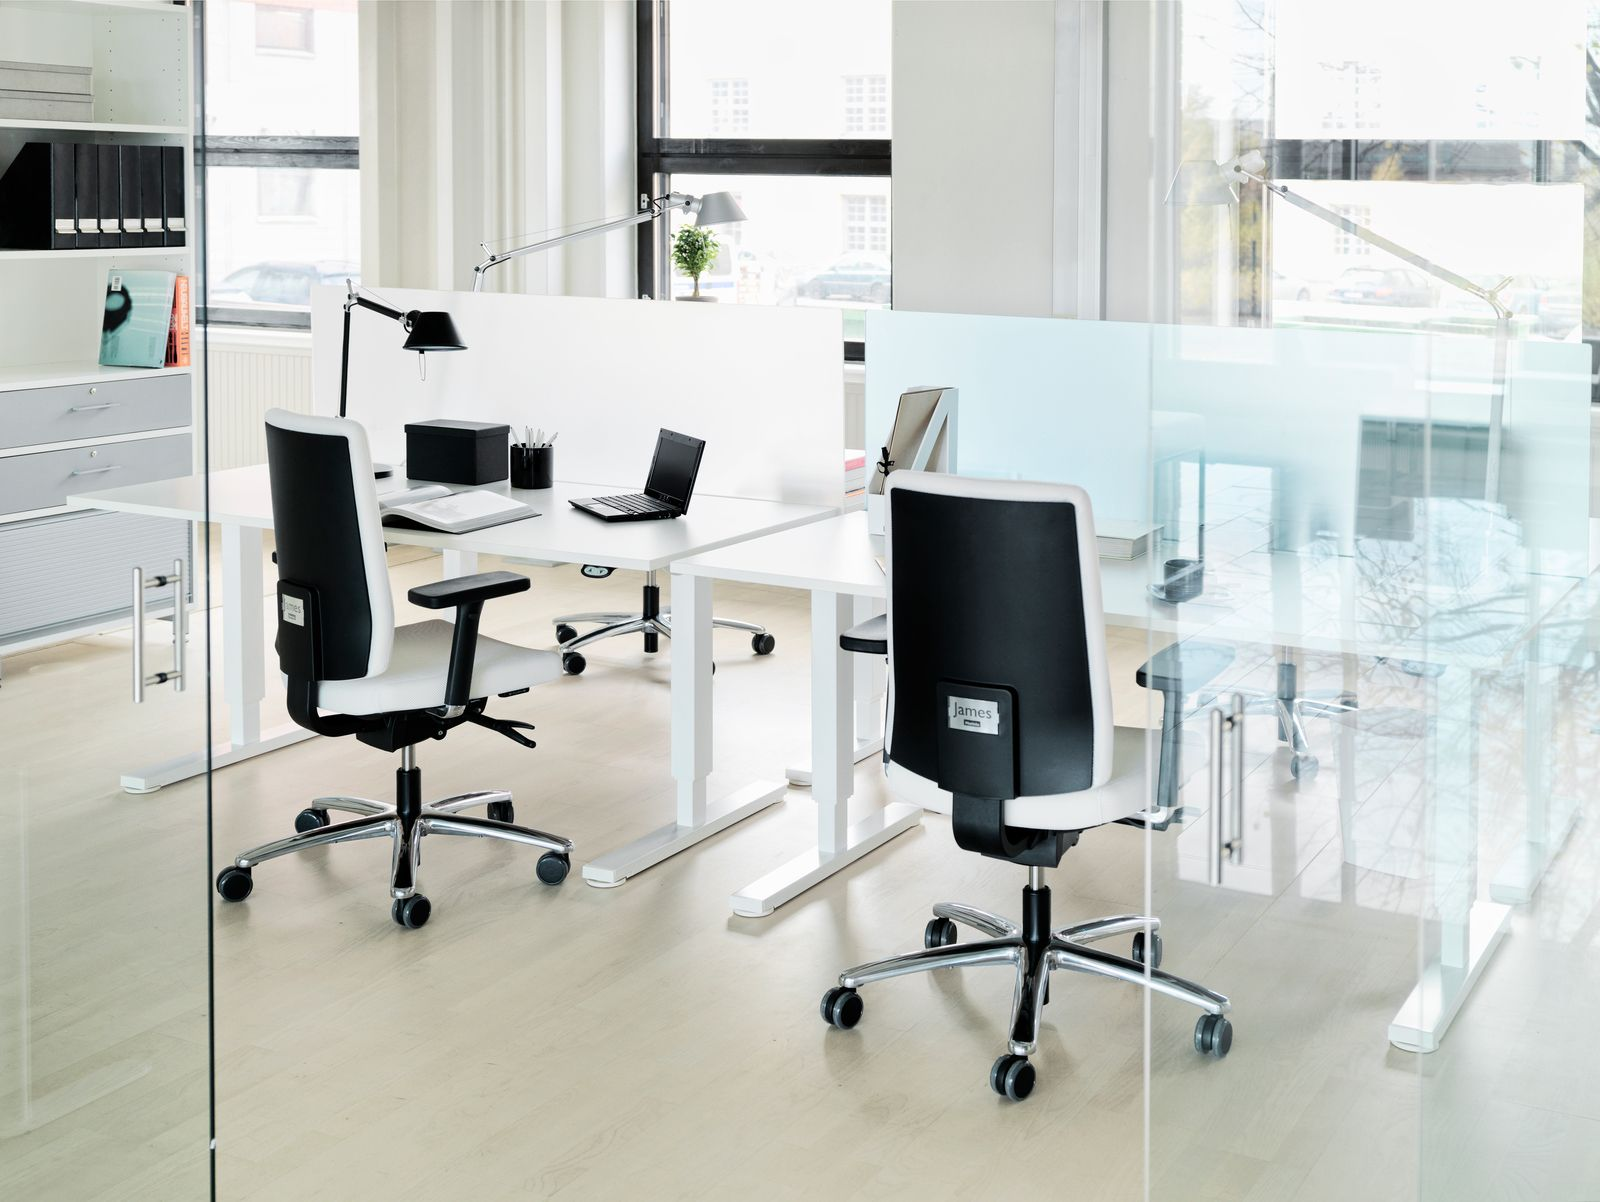 Spot space divider by Martela lets light through and isn't bulky. Yet, it gives the needed privacy in open offices.